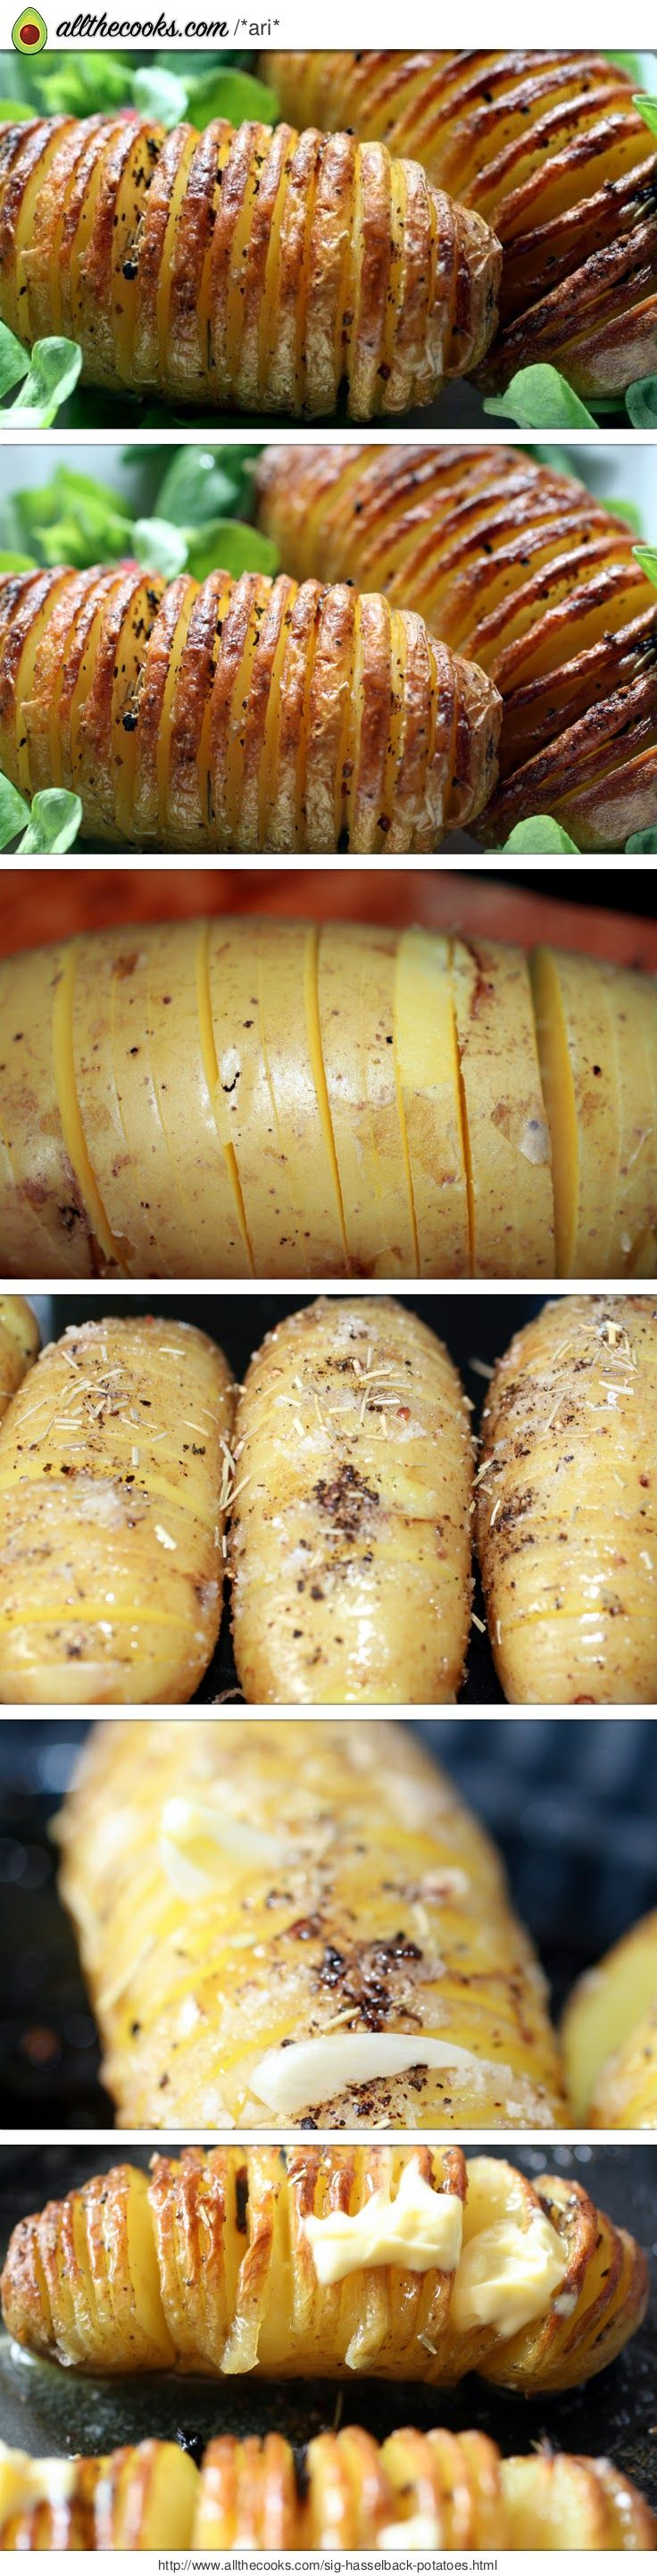 """Sig's  Humbles ( hasselback potatoes)! 4.83 stars, 29 reviews. """"Thank you all for trying these and your feed back.  I was asked the other day about the size of potato to ensure an even cooking . I use Middle finger long potatoes  that are about the with of a thumb and the hight of 3/4 of a thumb. This dish originates from Sweden , the potatoes  are named after the town Hasselbaken. I ate them when visiting as a student.  If you like roast , fried or twice baked potatoes  you propably will…"""